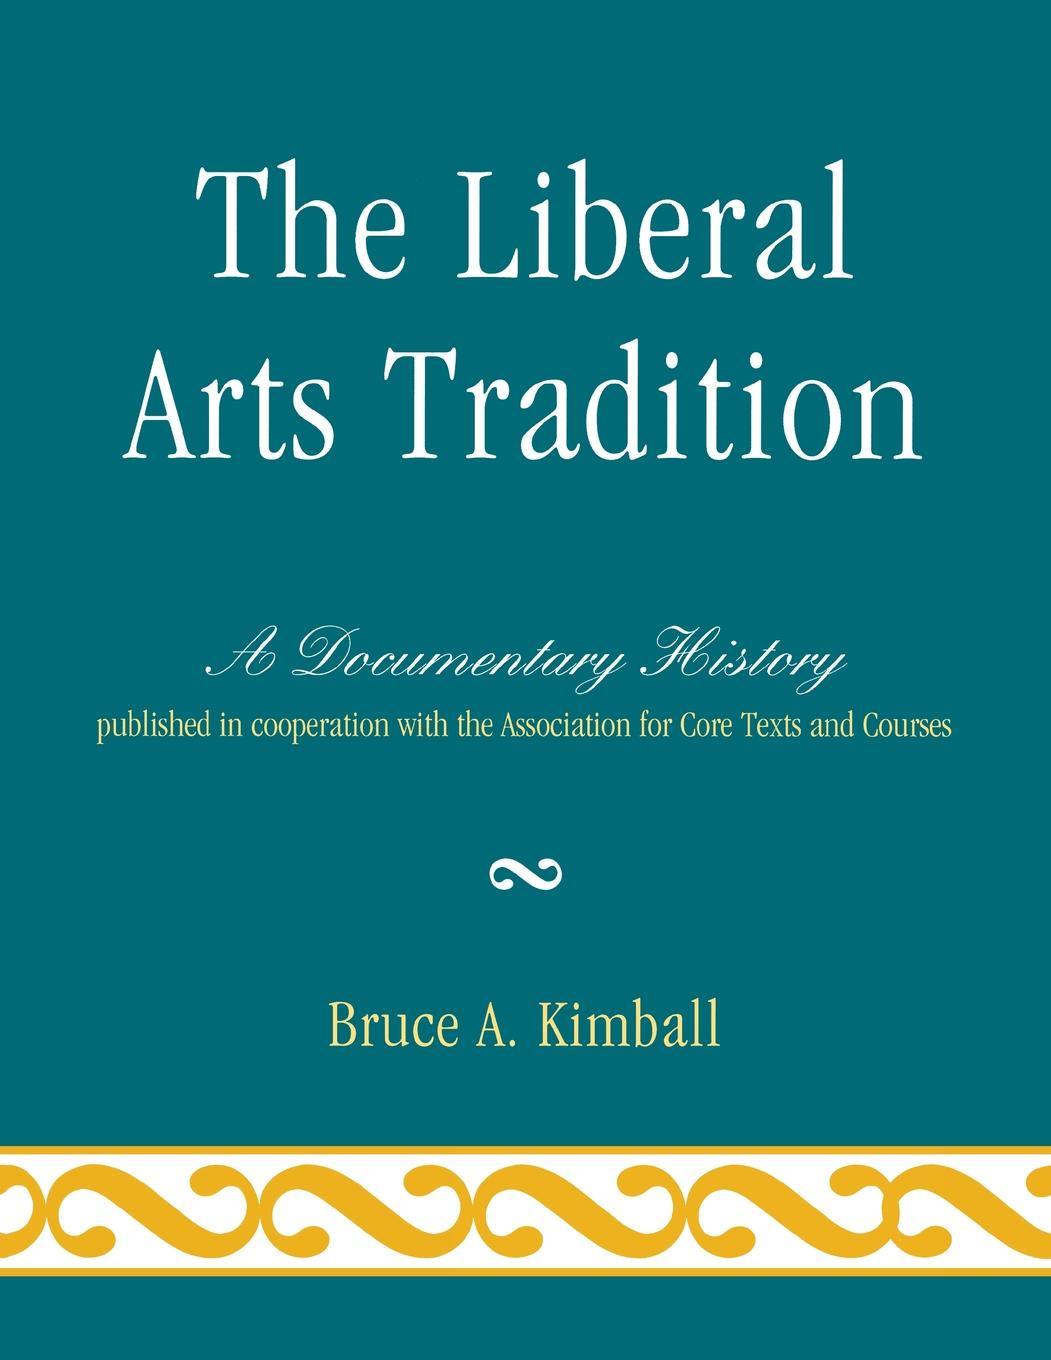 The Liberal Arts Tradition